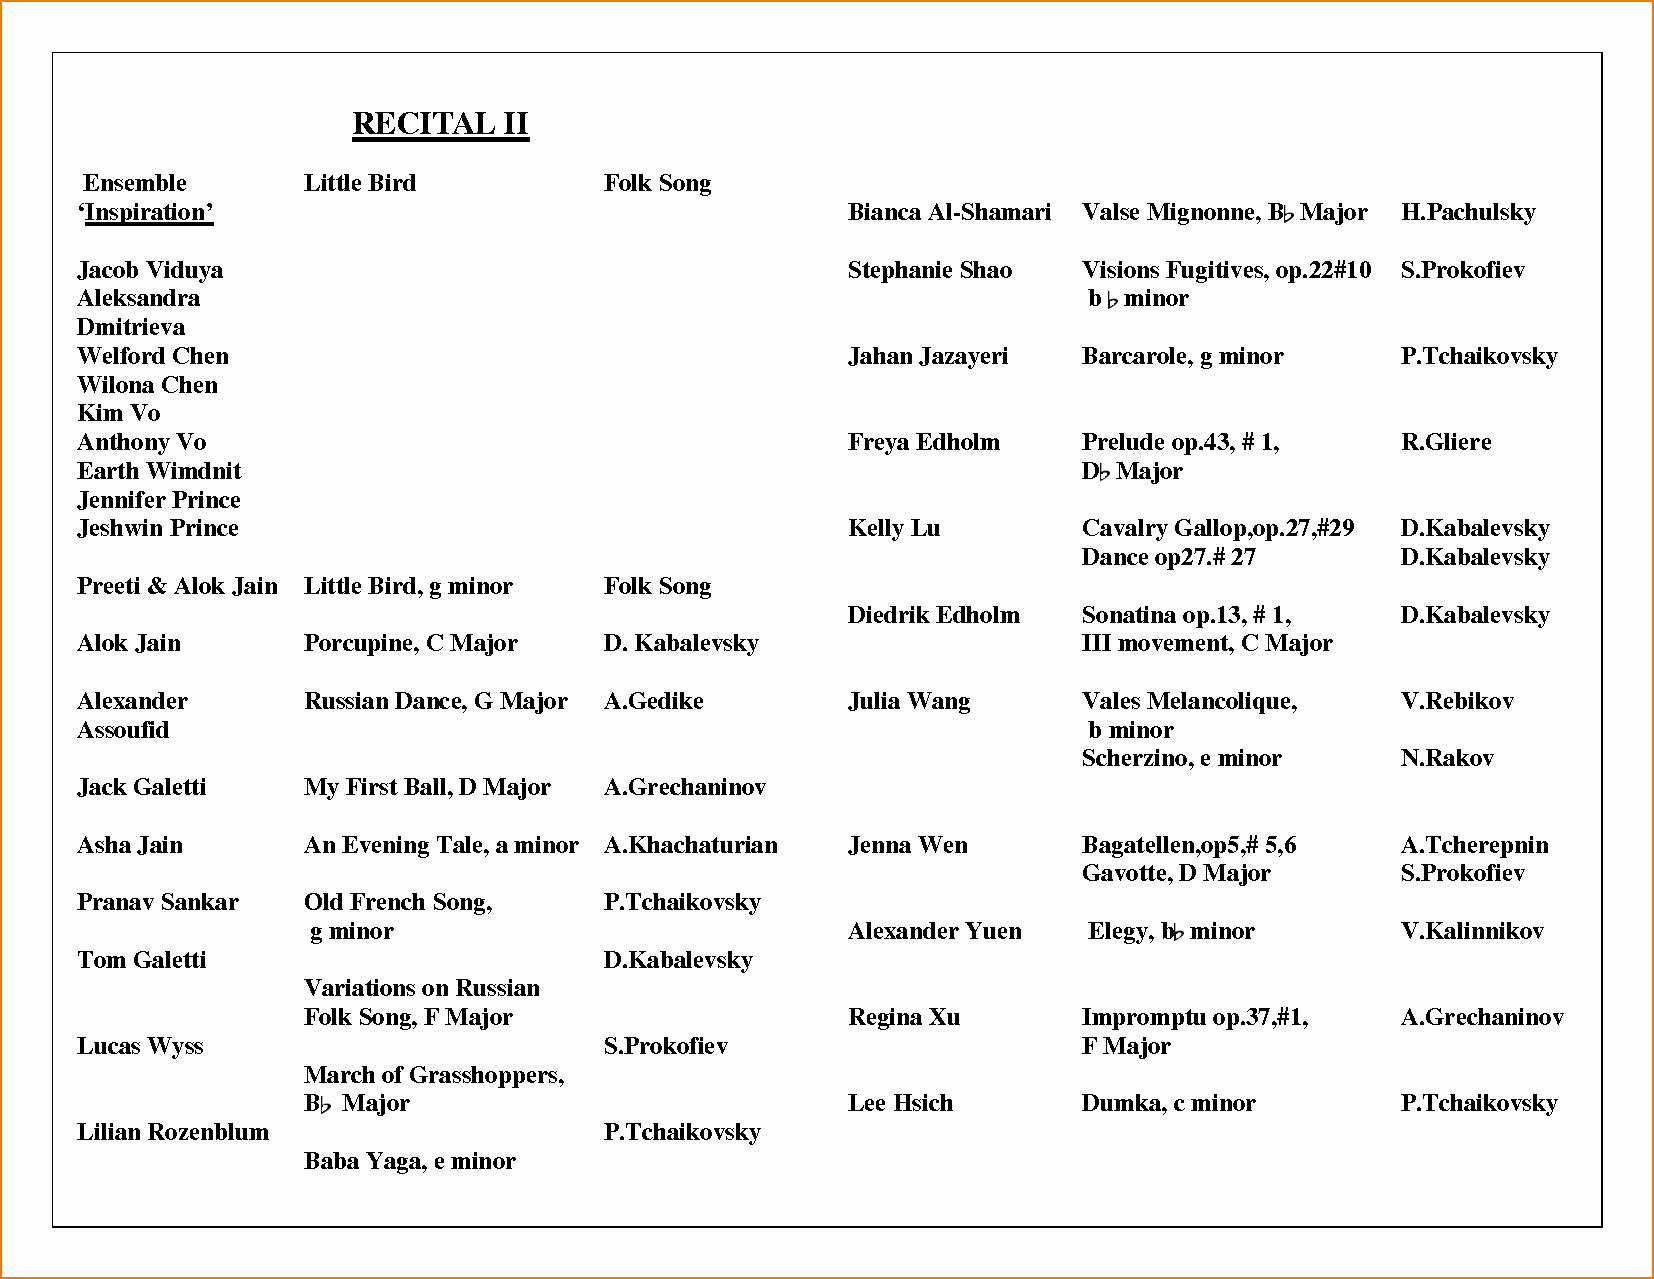 Concert Program Template Free Fresh Concert Program Template